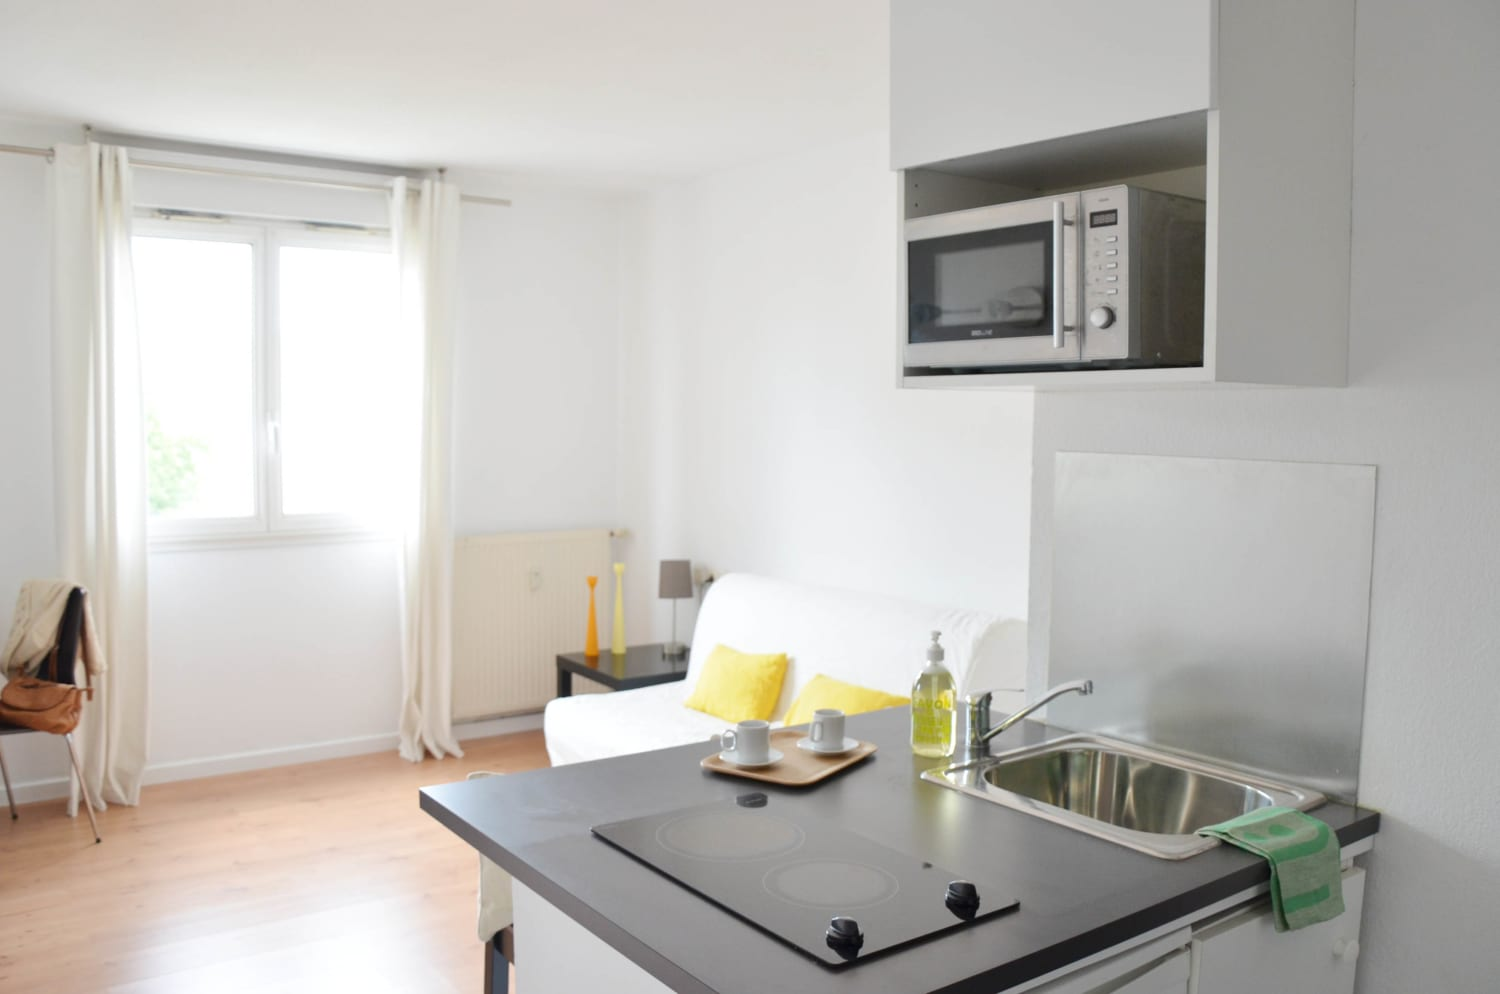 One-room apartment equipped kitchen at La Timone Marseille